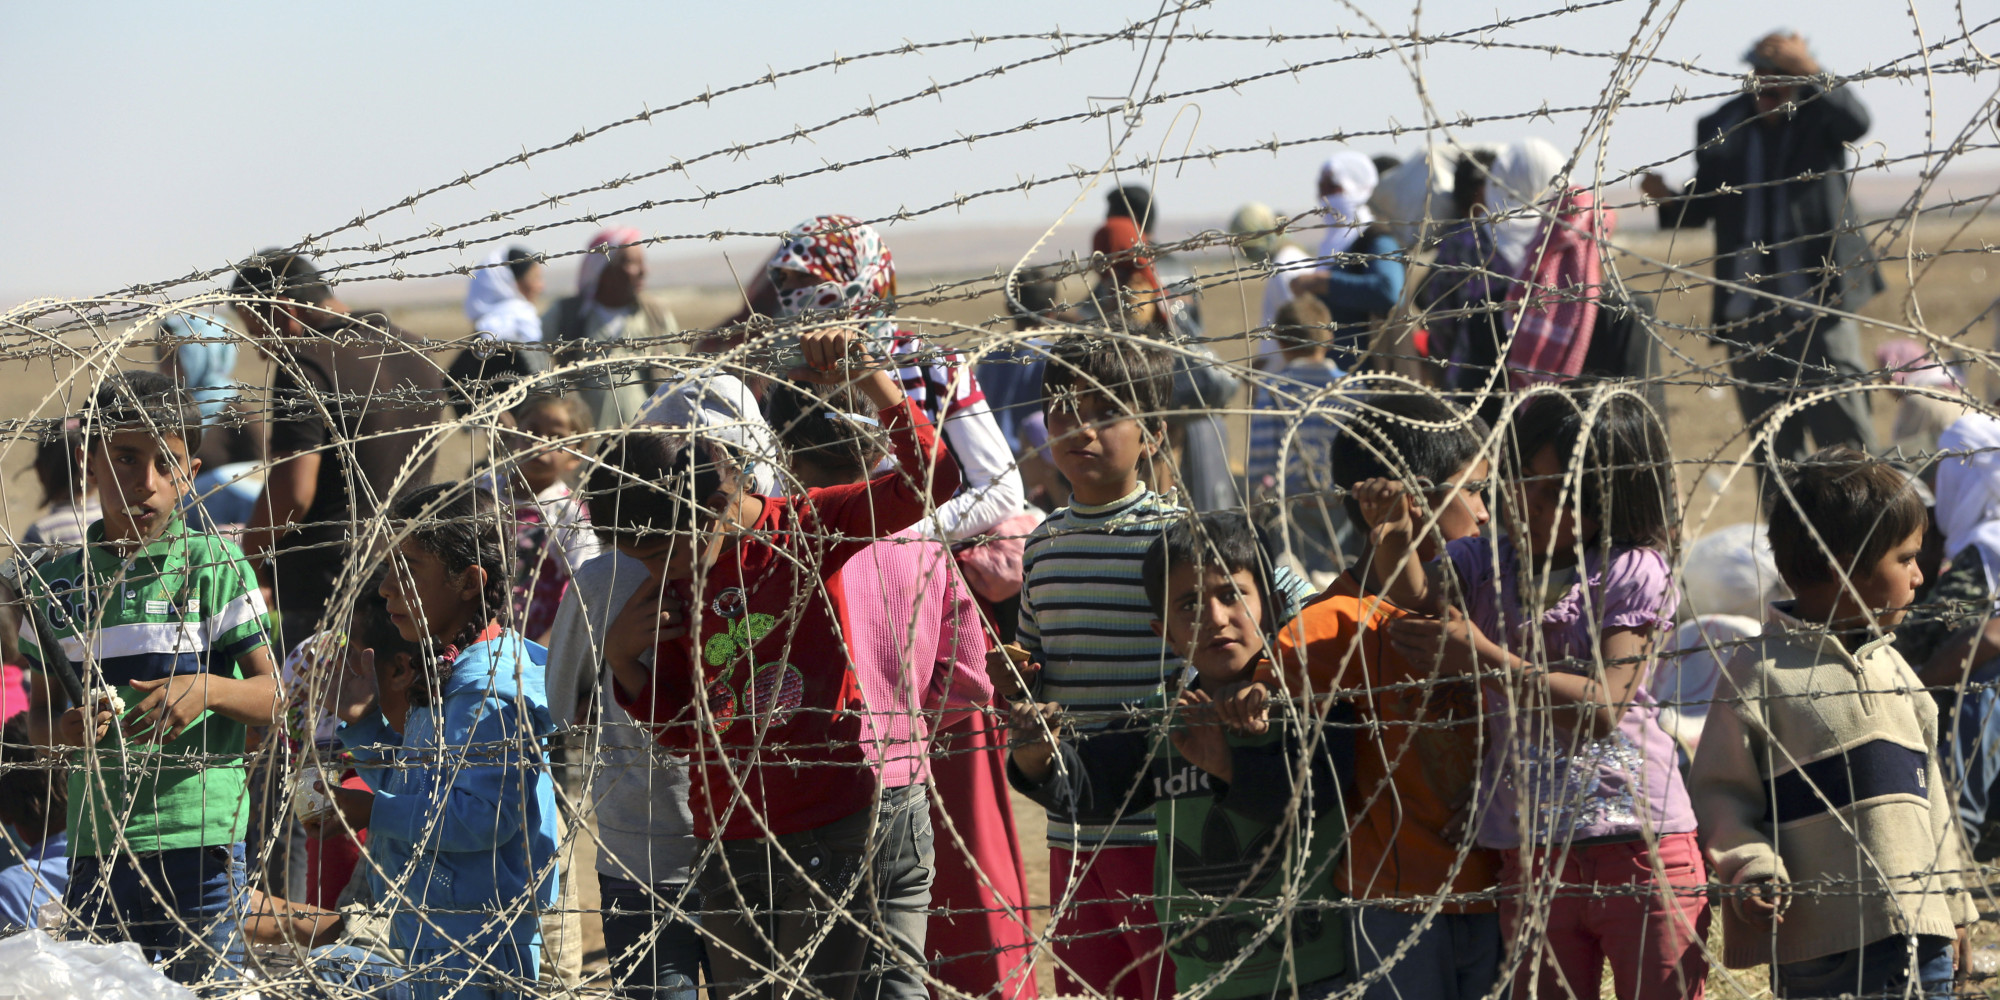 130,000 Syrians Have Fled ISIS And Taken Refuge In Turkey In The Past 4 Days